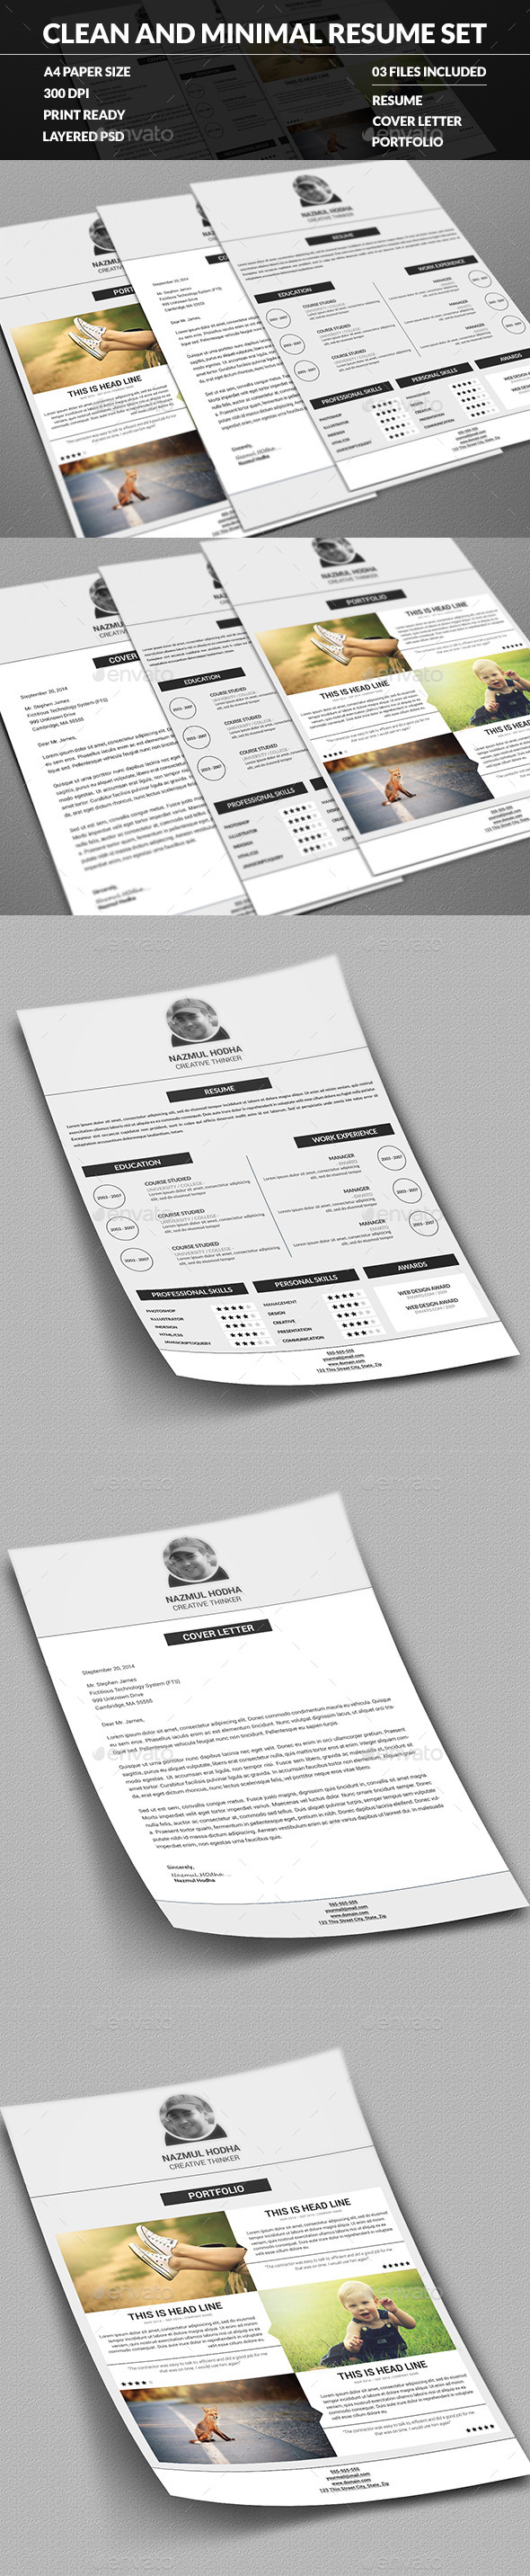 GraphicRiver Clean and Minimal Resume Set 8947959